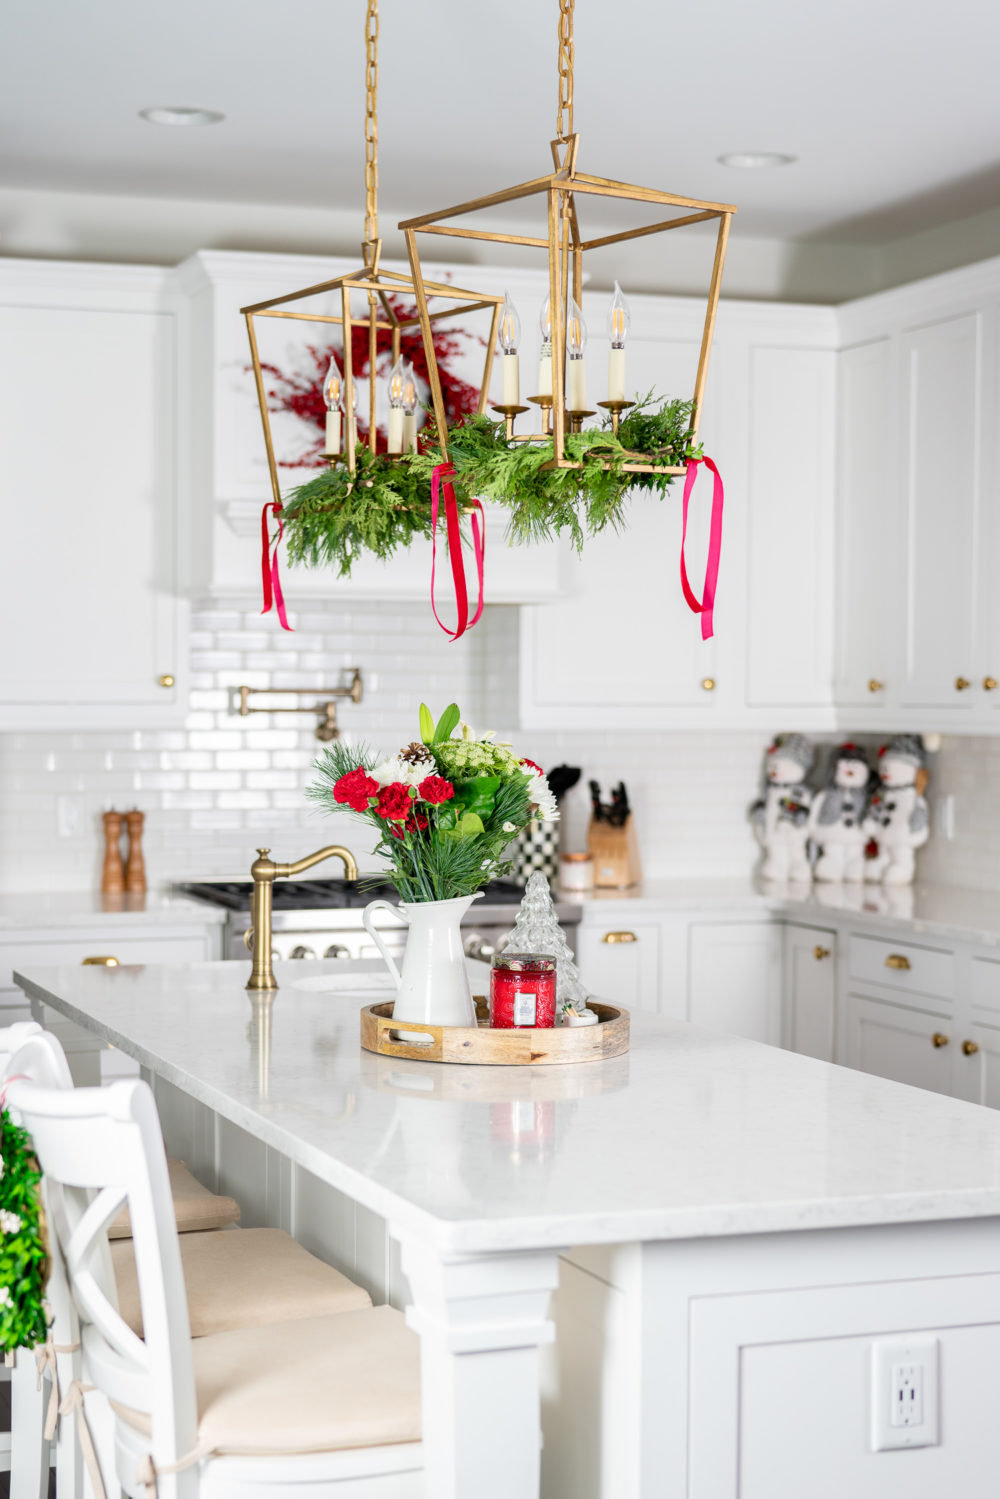 Petite Fashion Blog | Our Home for the Holidays | Christmas Decor | Flocked Christmas Tree | White Kitchen